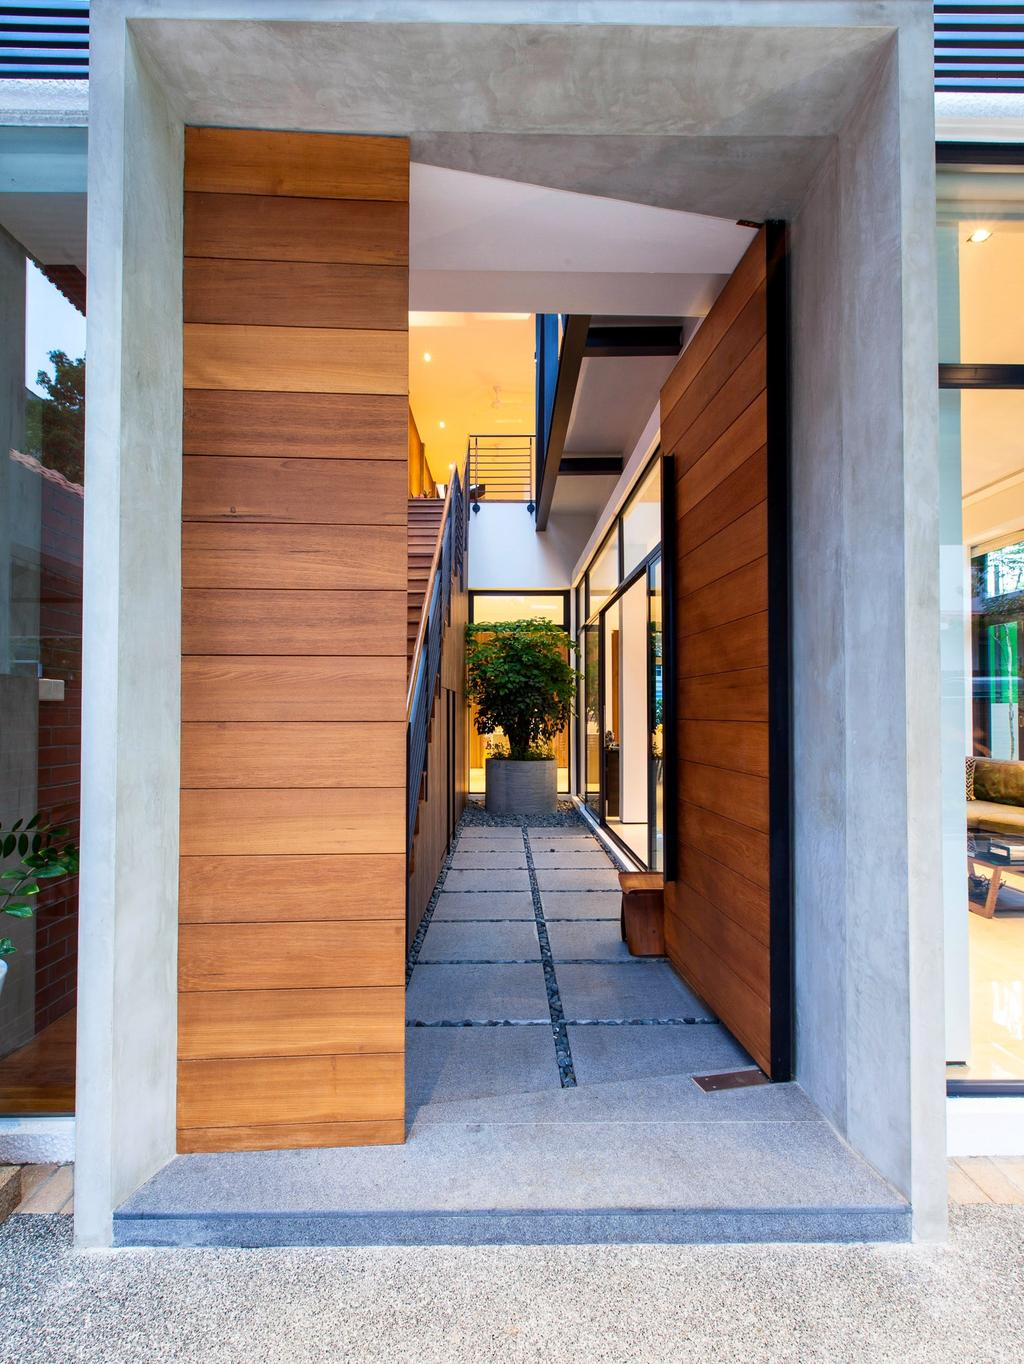 Contemporary, Landed, Jalan Remis, Architect, Aamer Architects, Flora, Jar, Plant, Potted Plant, Pottery, Vase, Banister, Handrail, Staircase, Building, House, Housing, Villa